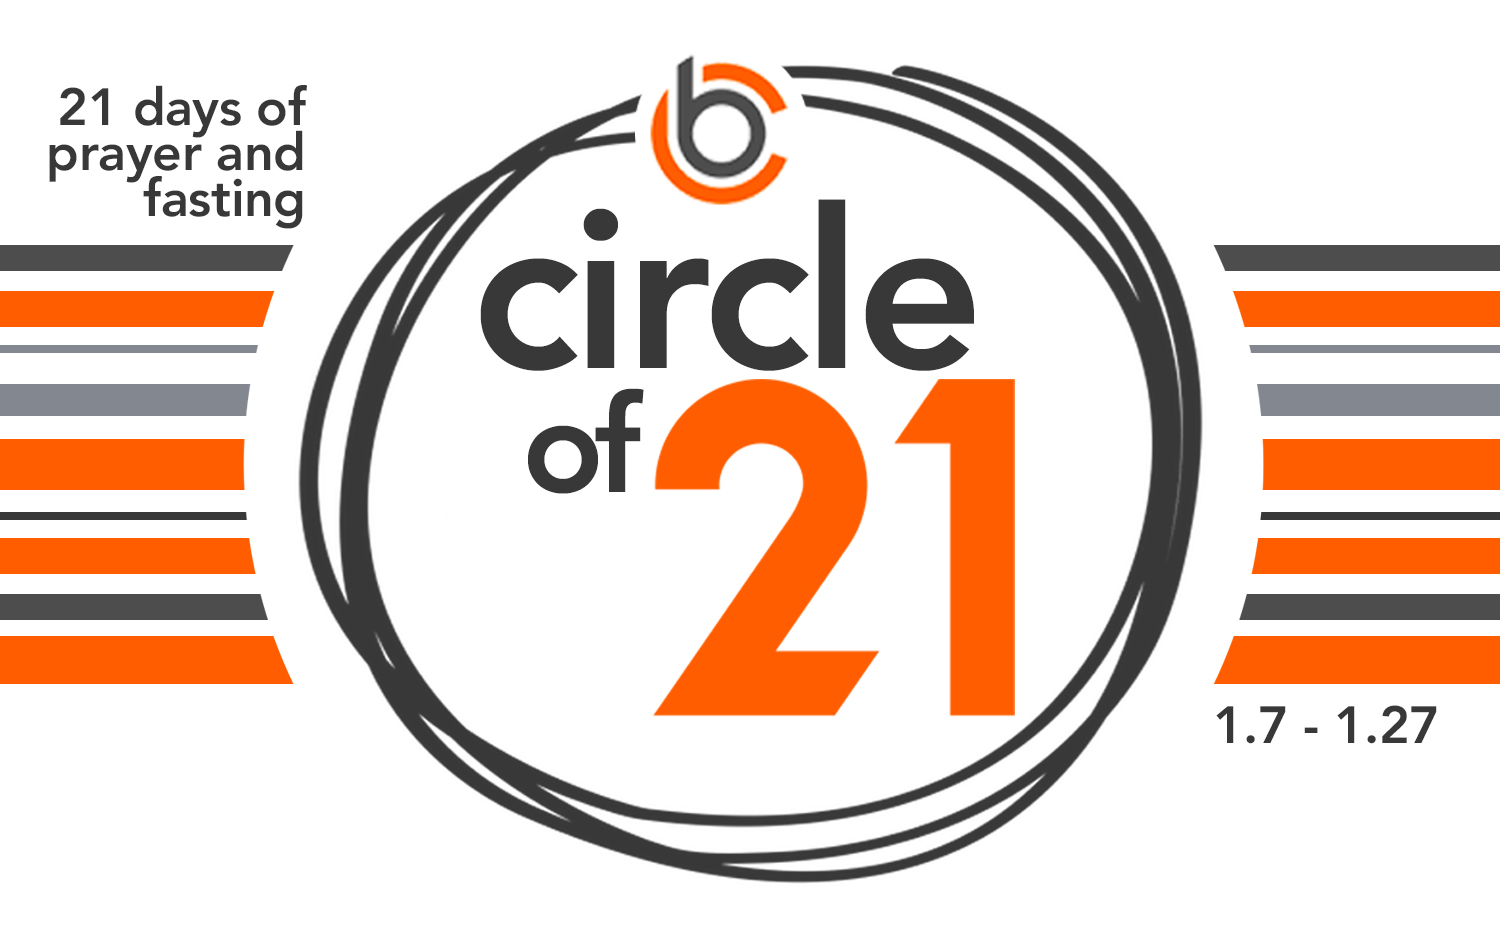 circle-of-21-slide-graphic.jpg